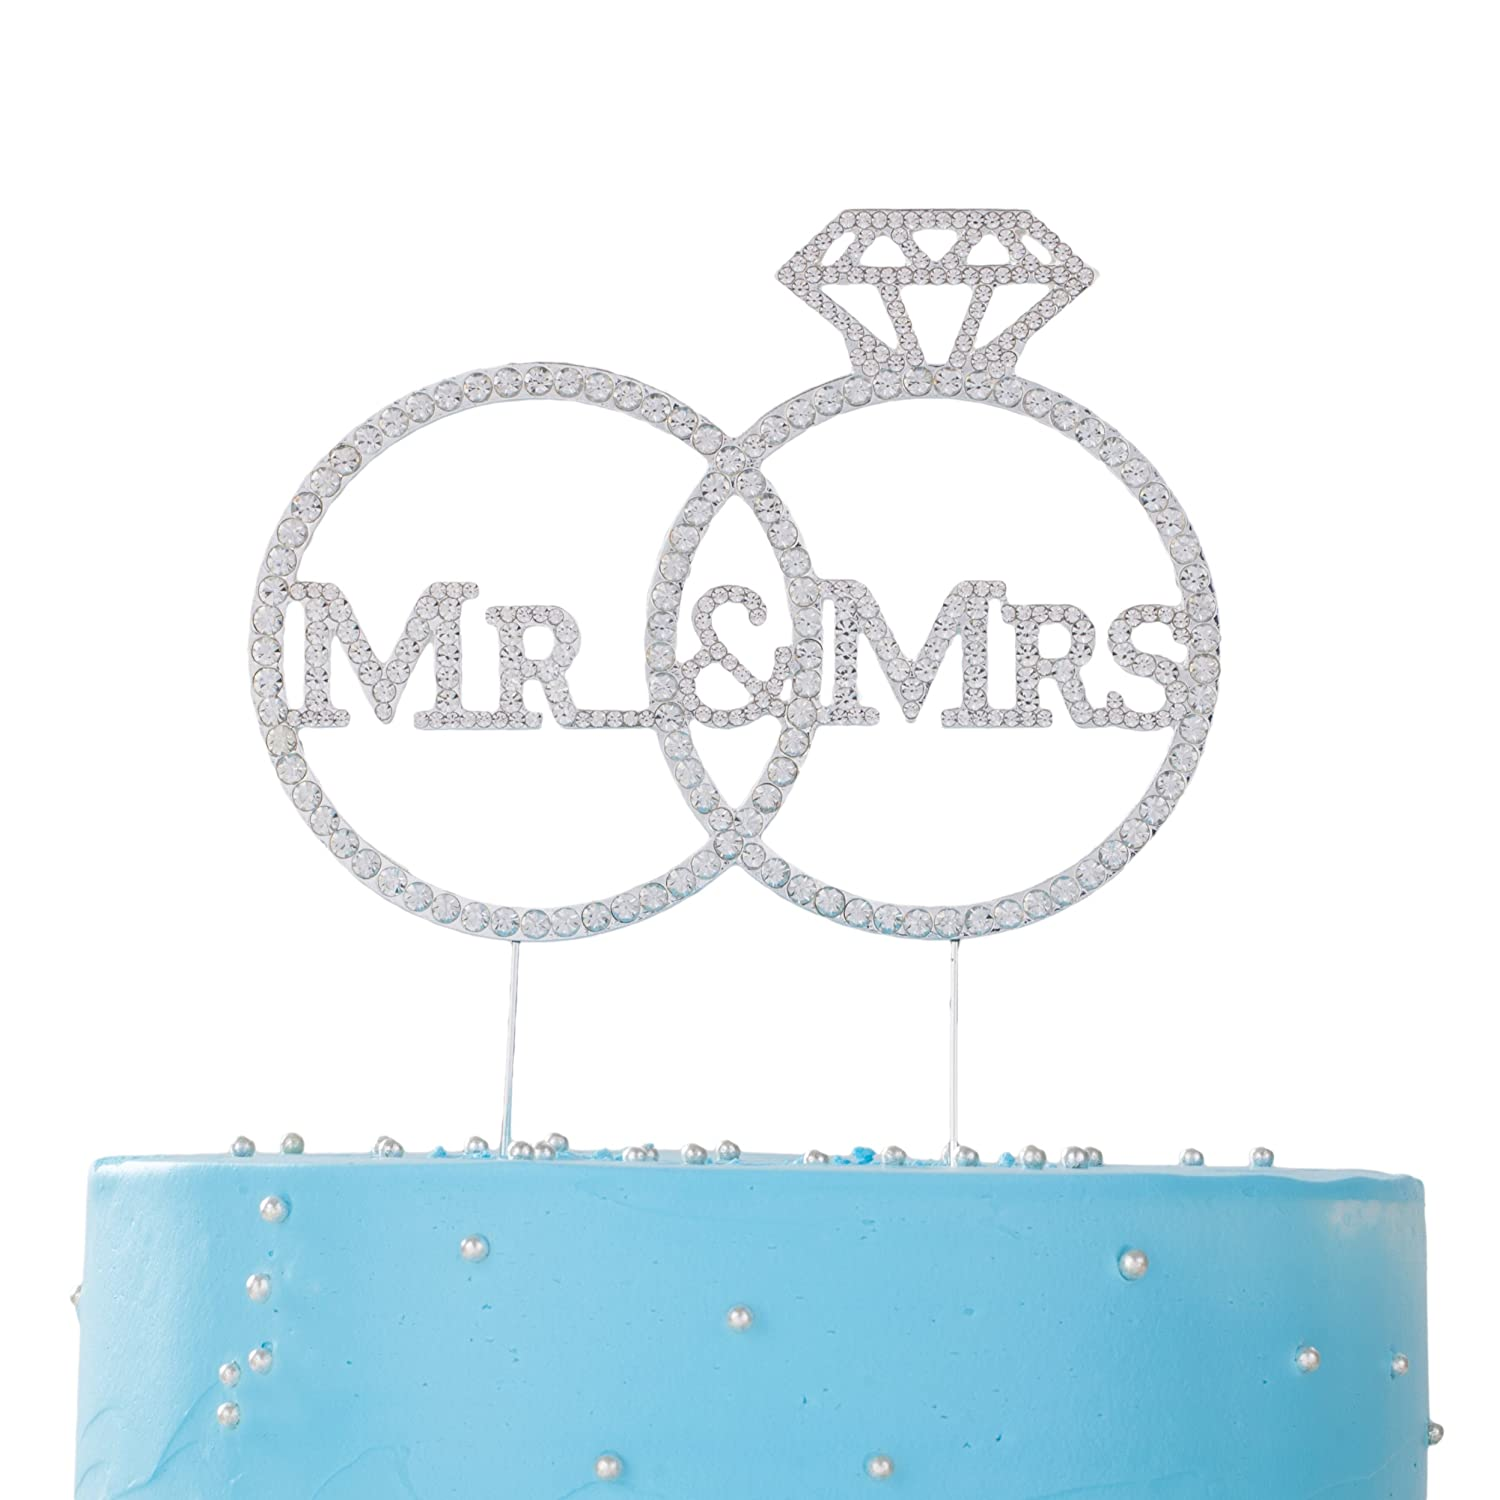 Amazon Lovenjoy With Gift Box Crystal Rhinestone Mr Mrs Diamond Ring Wedding Engagement Cake Toppers Silver 58inch Toys Games: Cake Topper Wedding Silver Diamond Ring At Websimilar.org